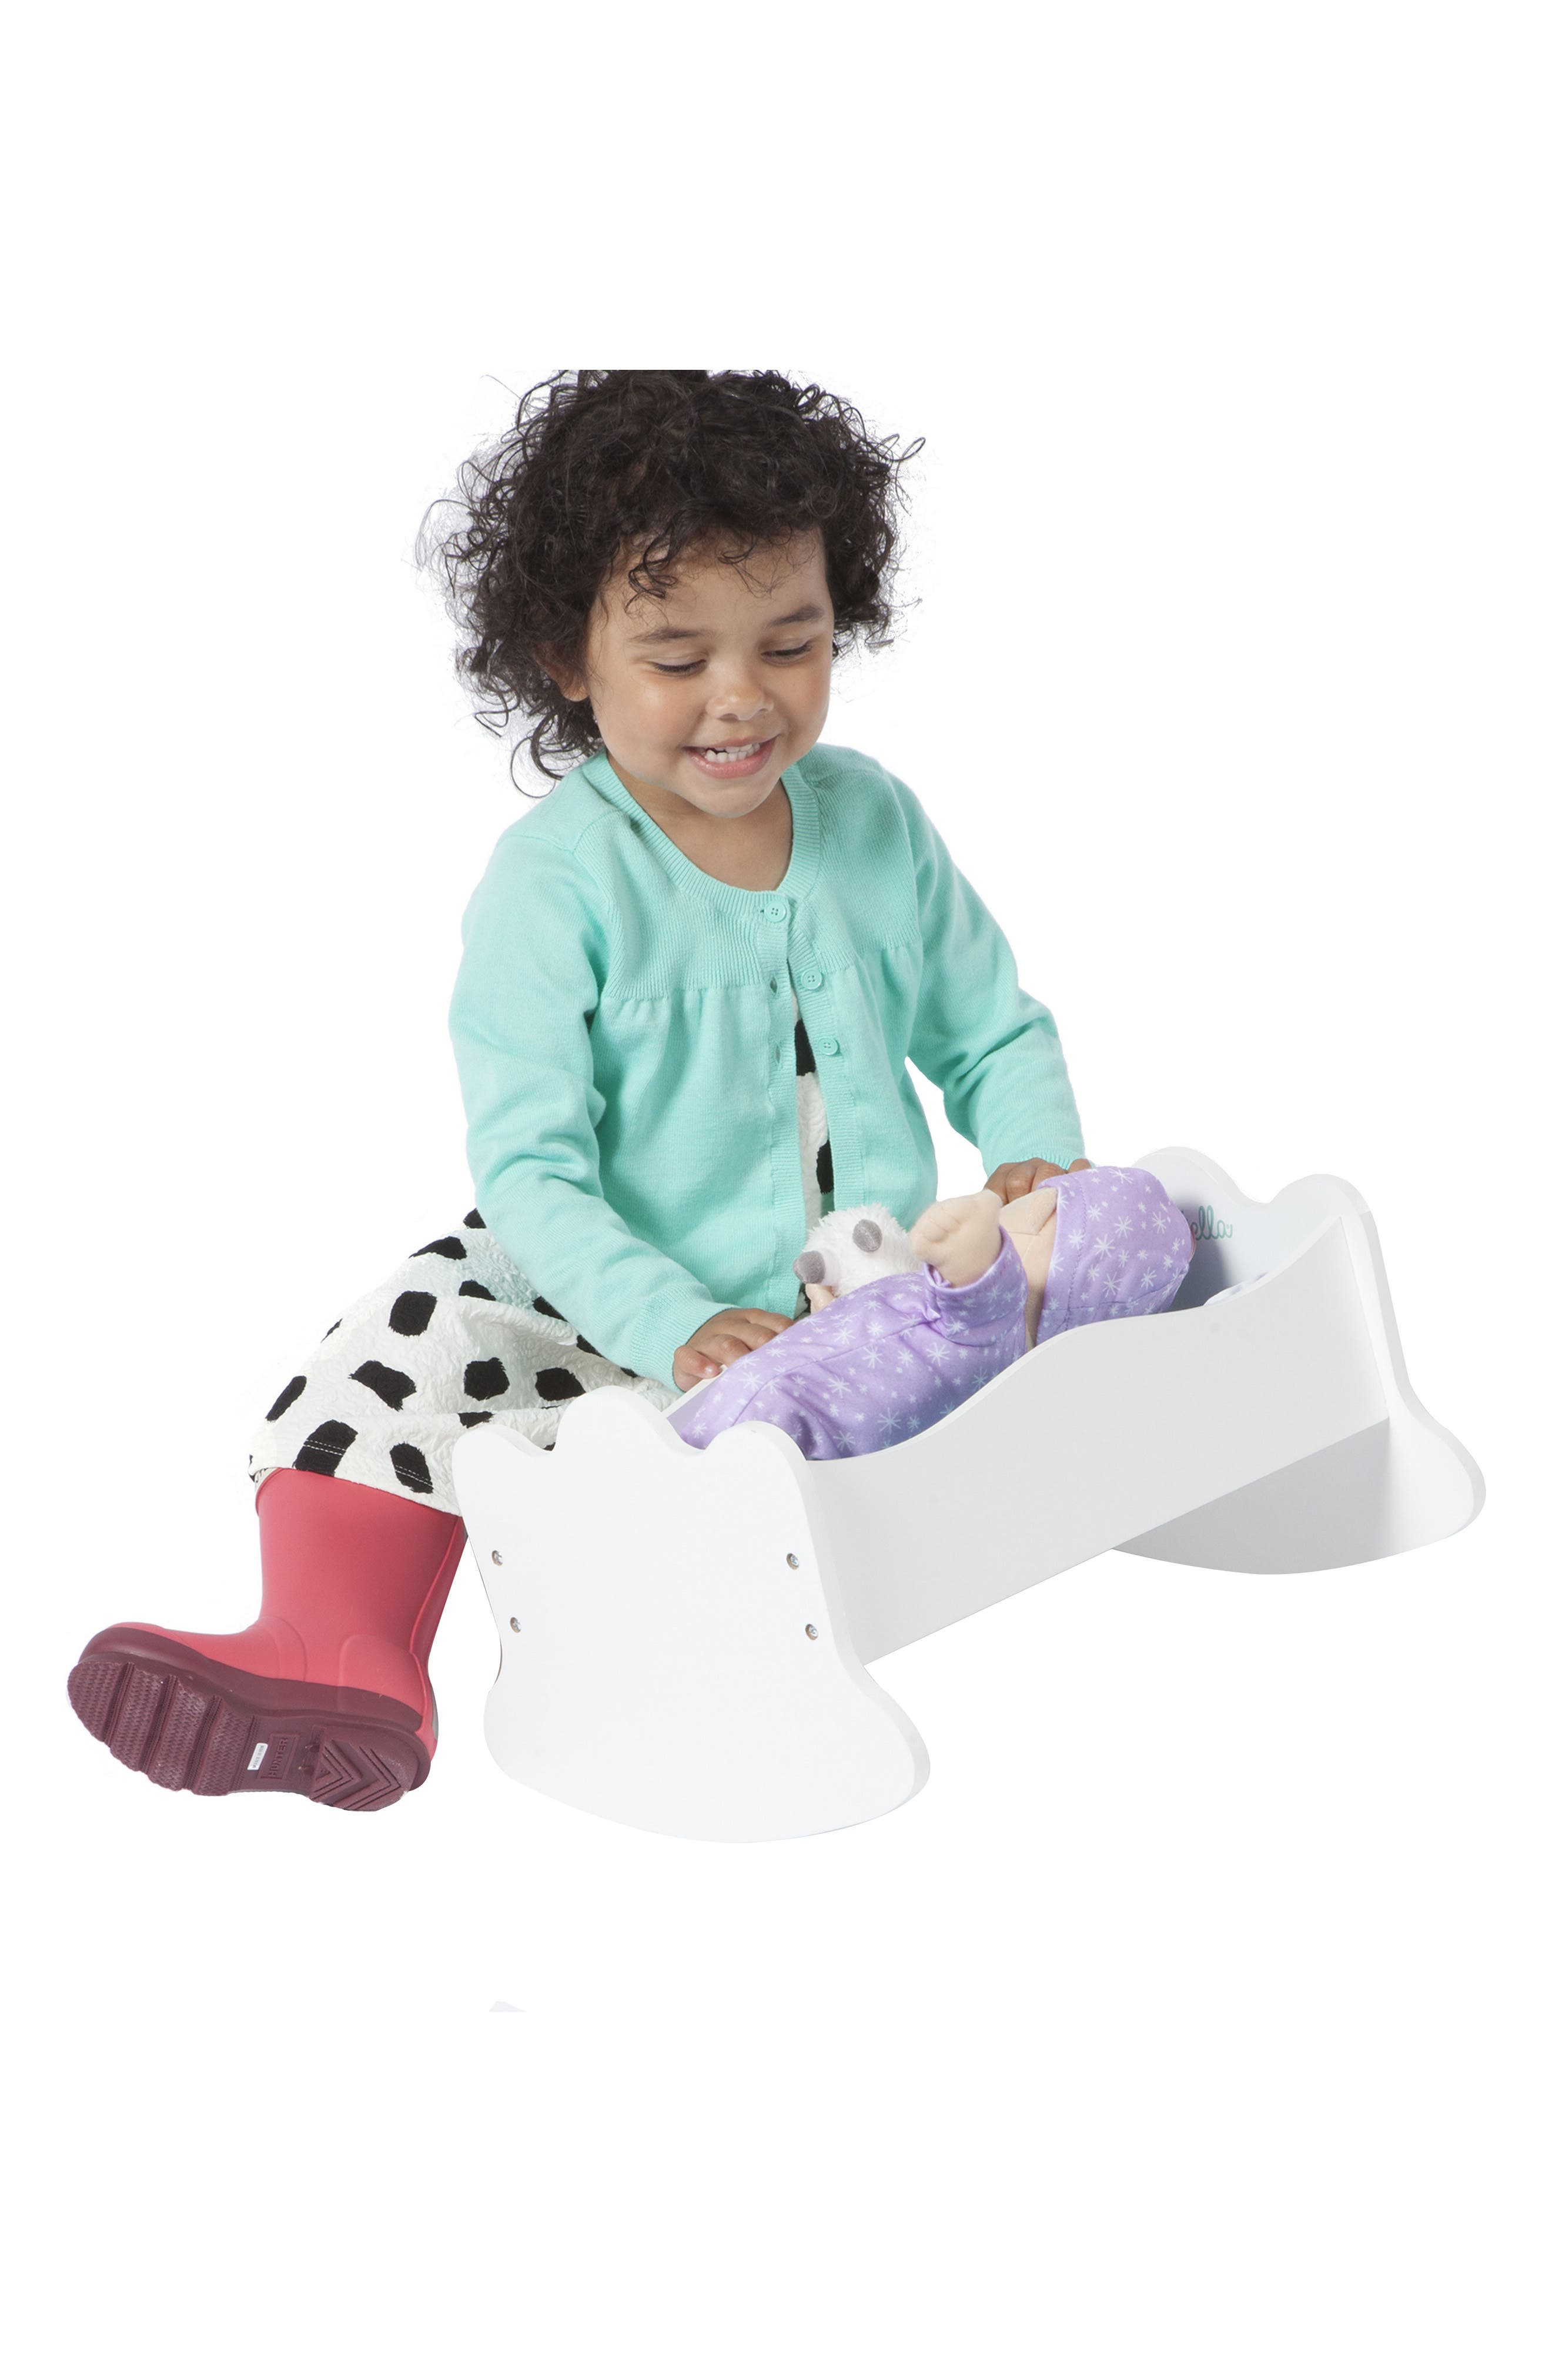 Mahattan Toy Baby Stella Wooden Rock-a-Bye Doll Cradle,                             Alternate thumbnail 4, color,                             100